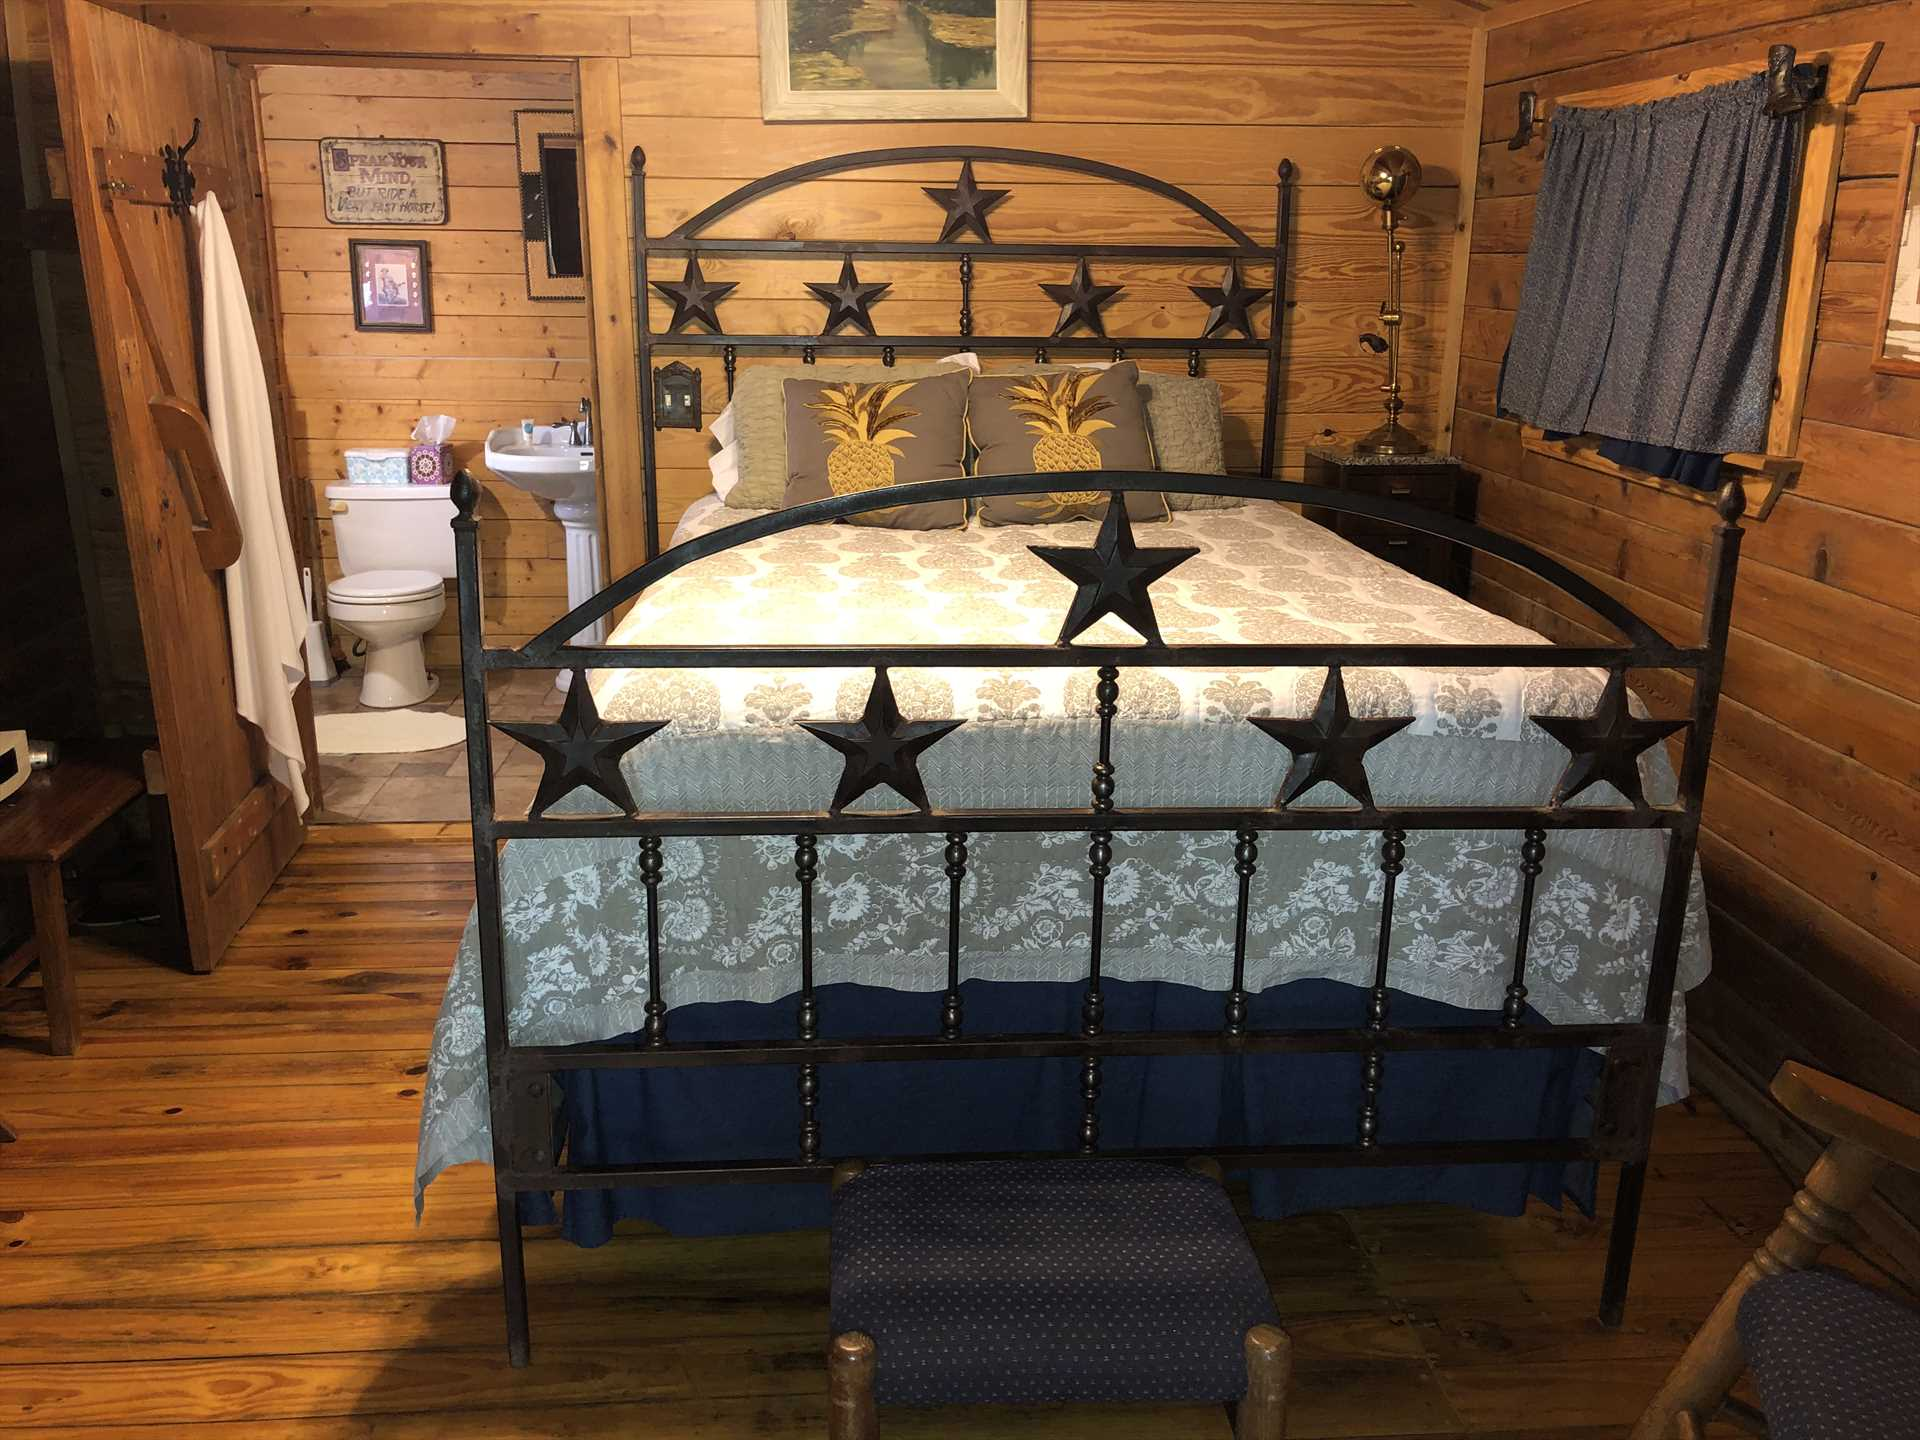 Check out the uniquely-Texan Lone Star frame on the big and comfortable queen-sized bed!